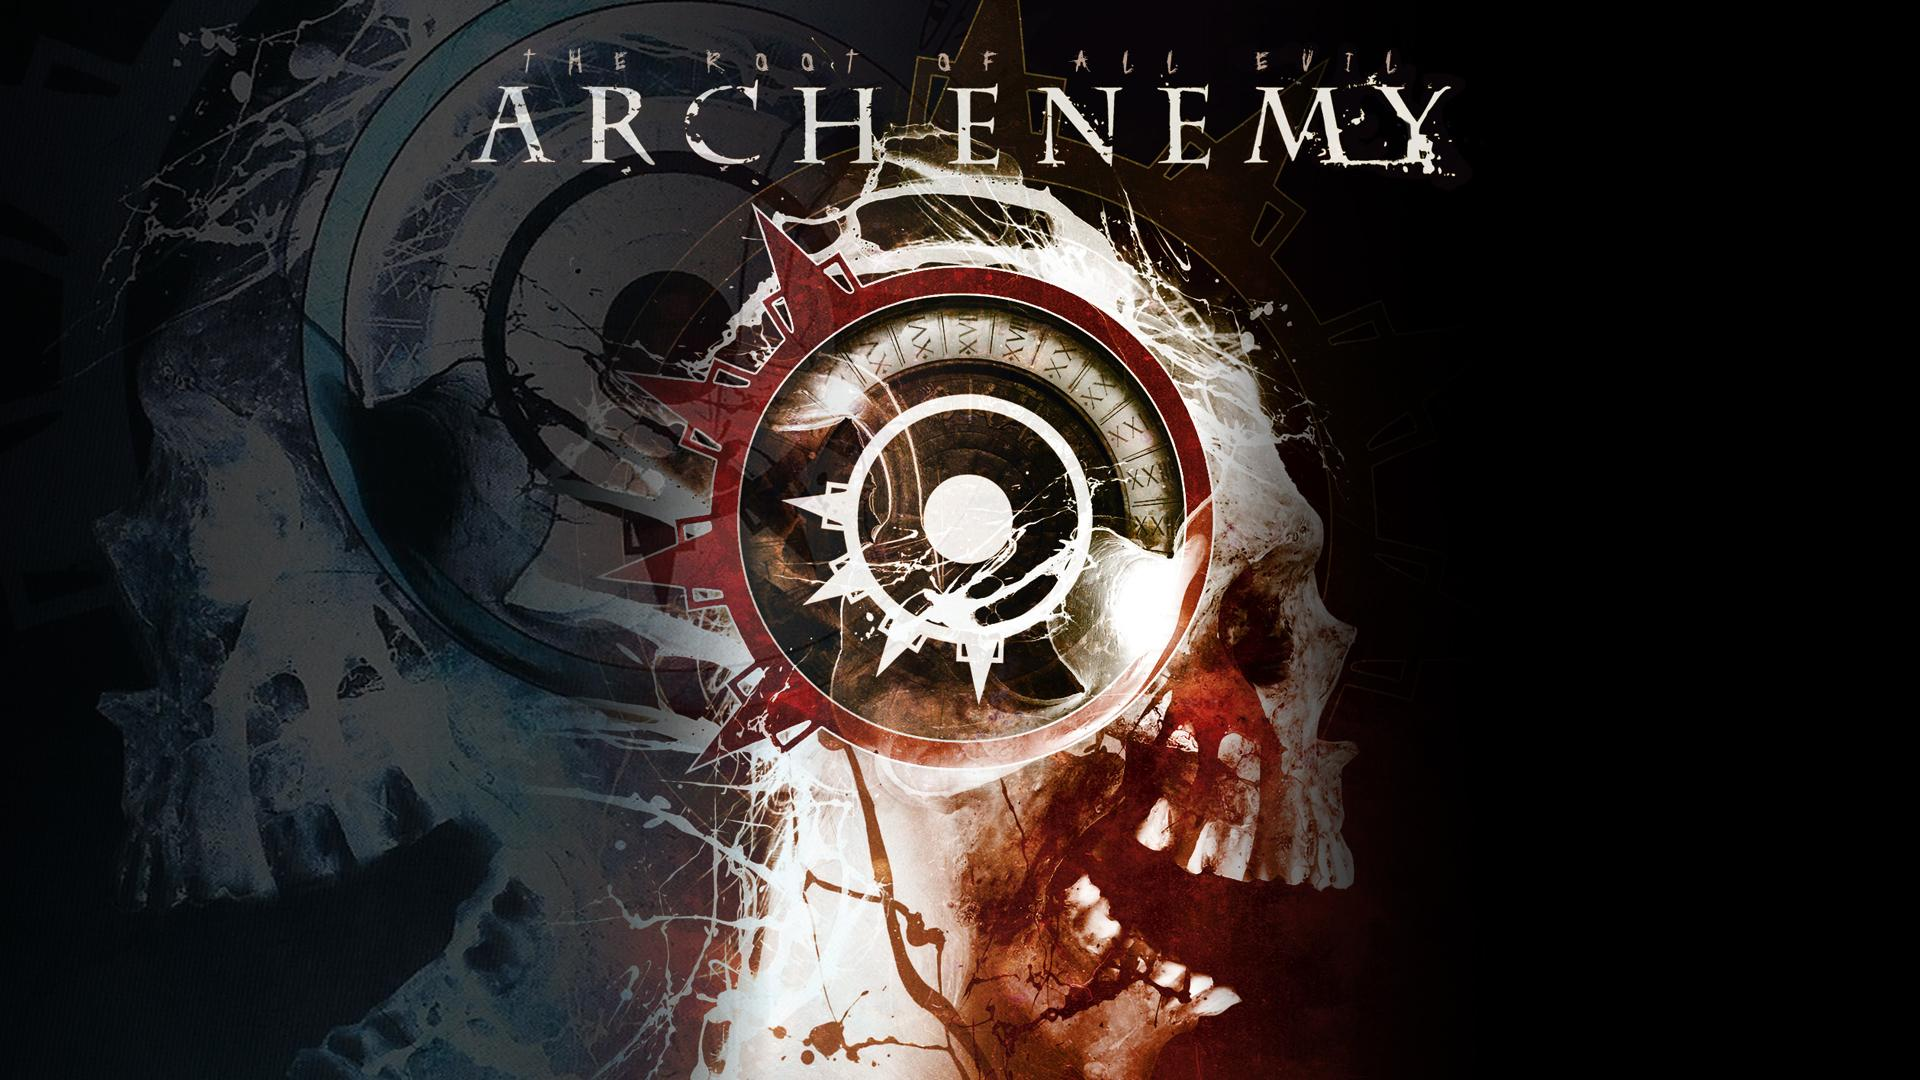 Arch-Enemy-Root-of-all-Evil-1920-x-1080-Need-iPhone-S-Plus-Background-for-IPho-wallpaper-wp3602683